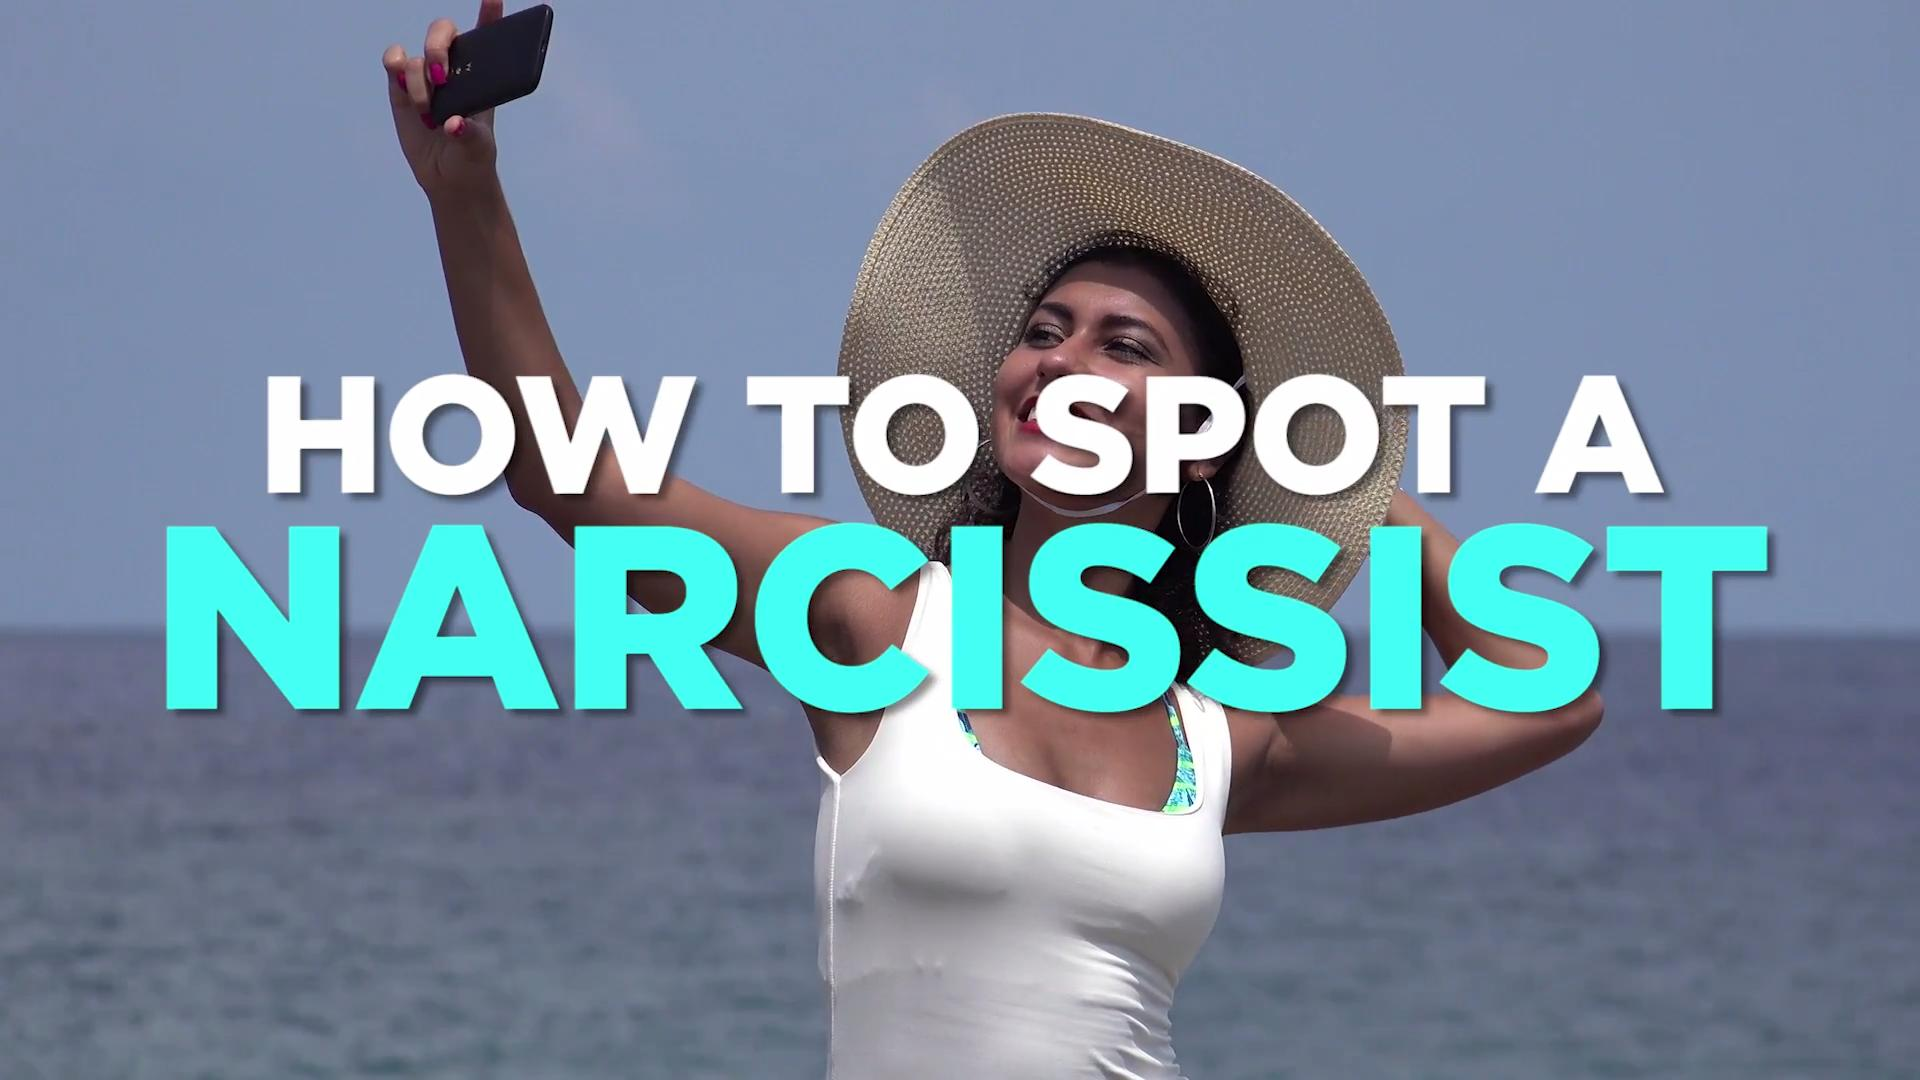 What is narcissism, exactly?